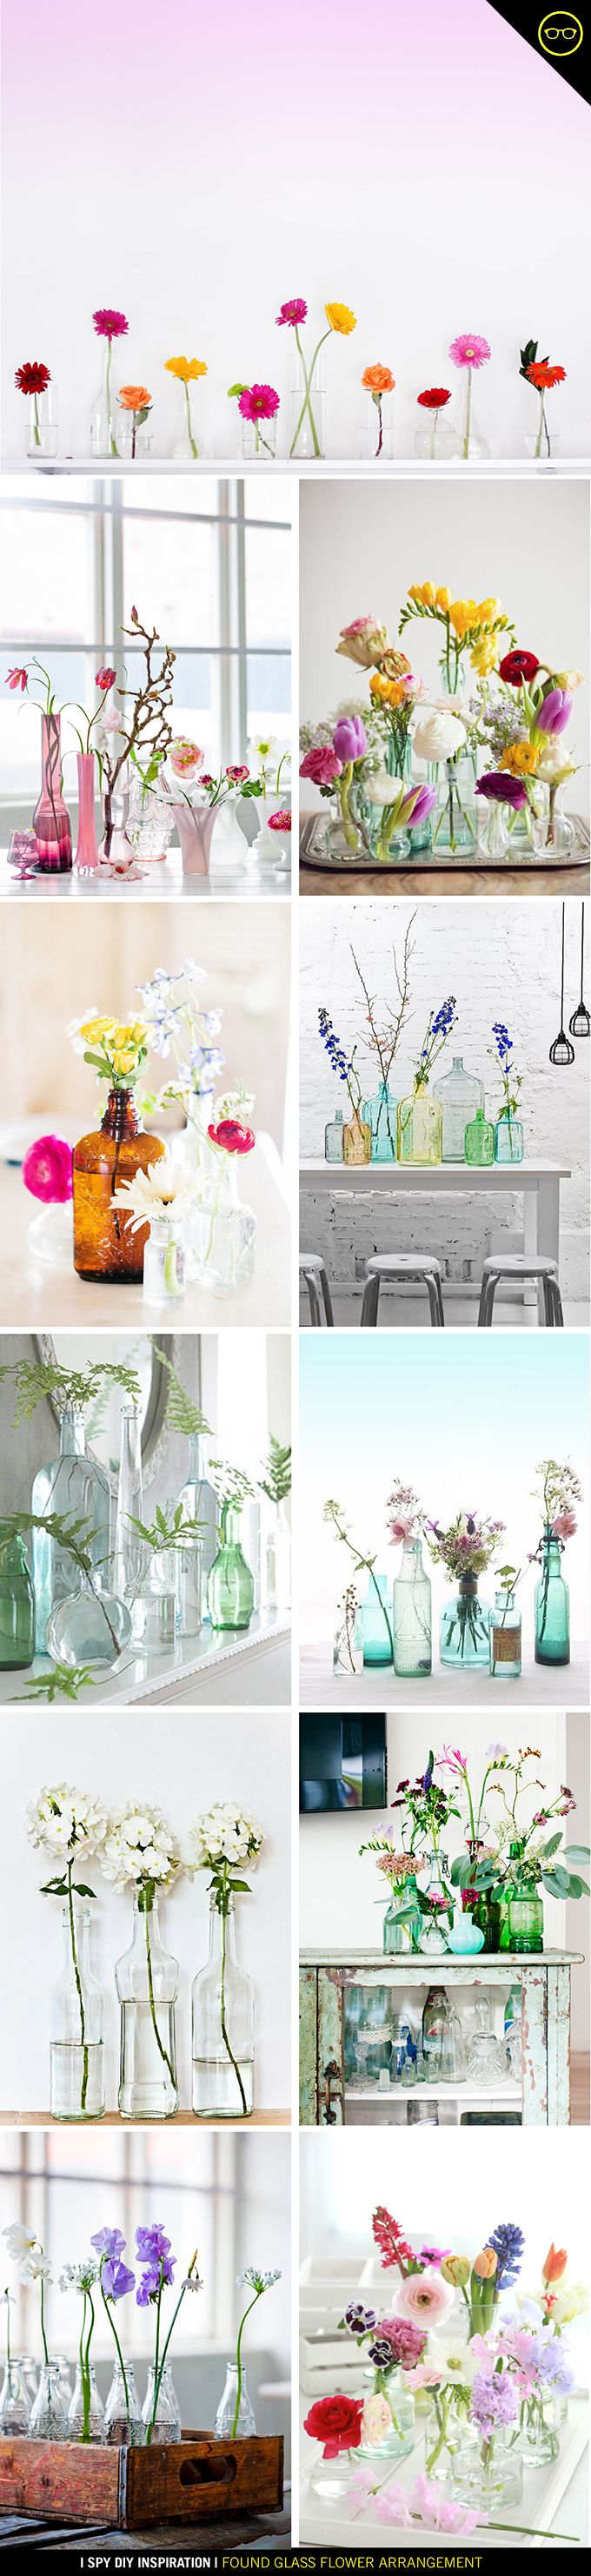 Every time I go into a secondhand store, I can't help but walk out with a new glass vase or...